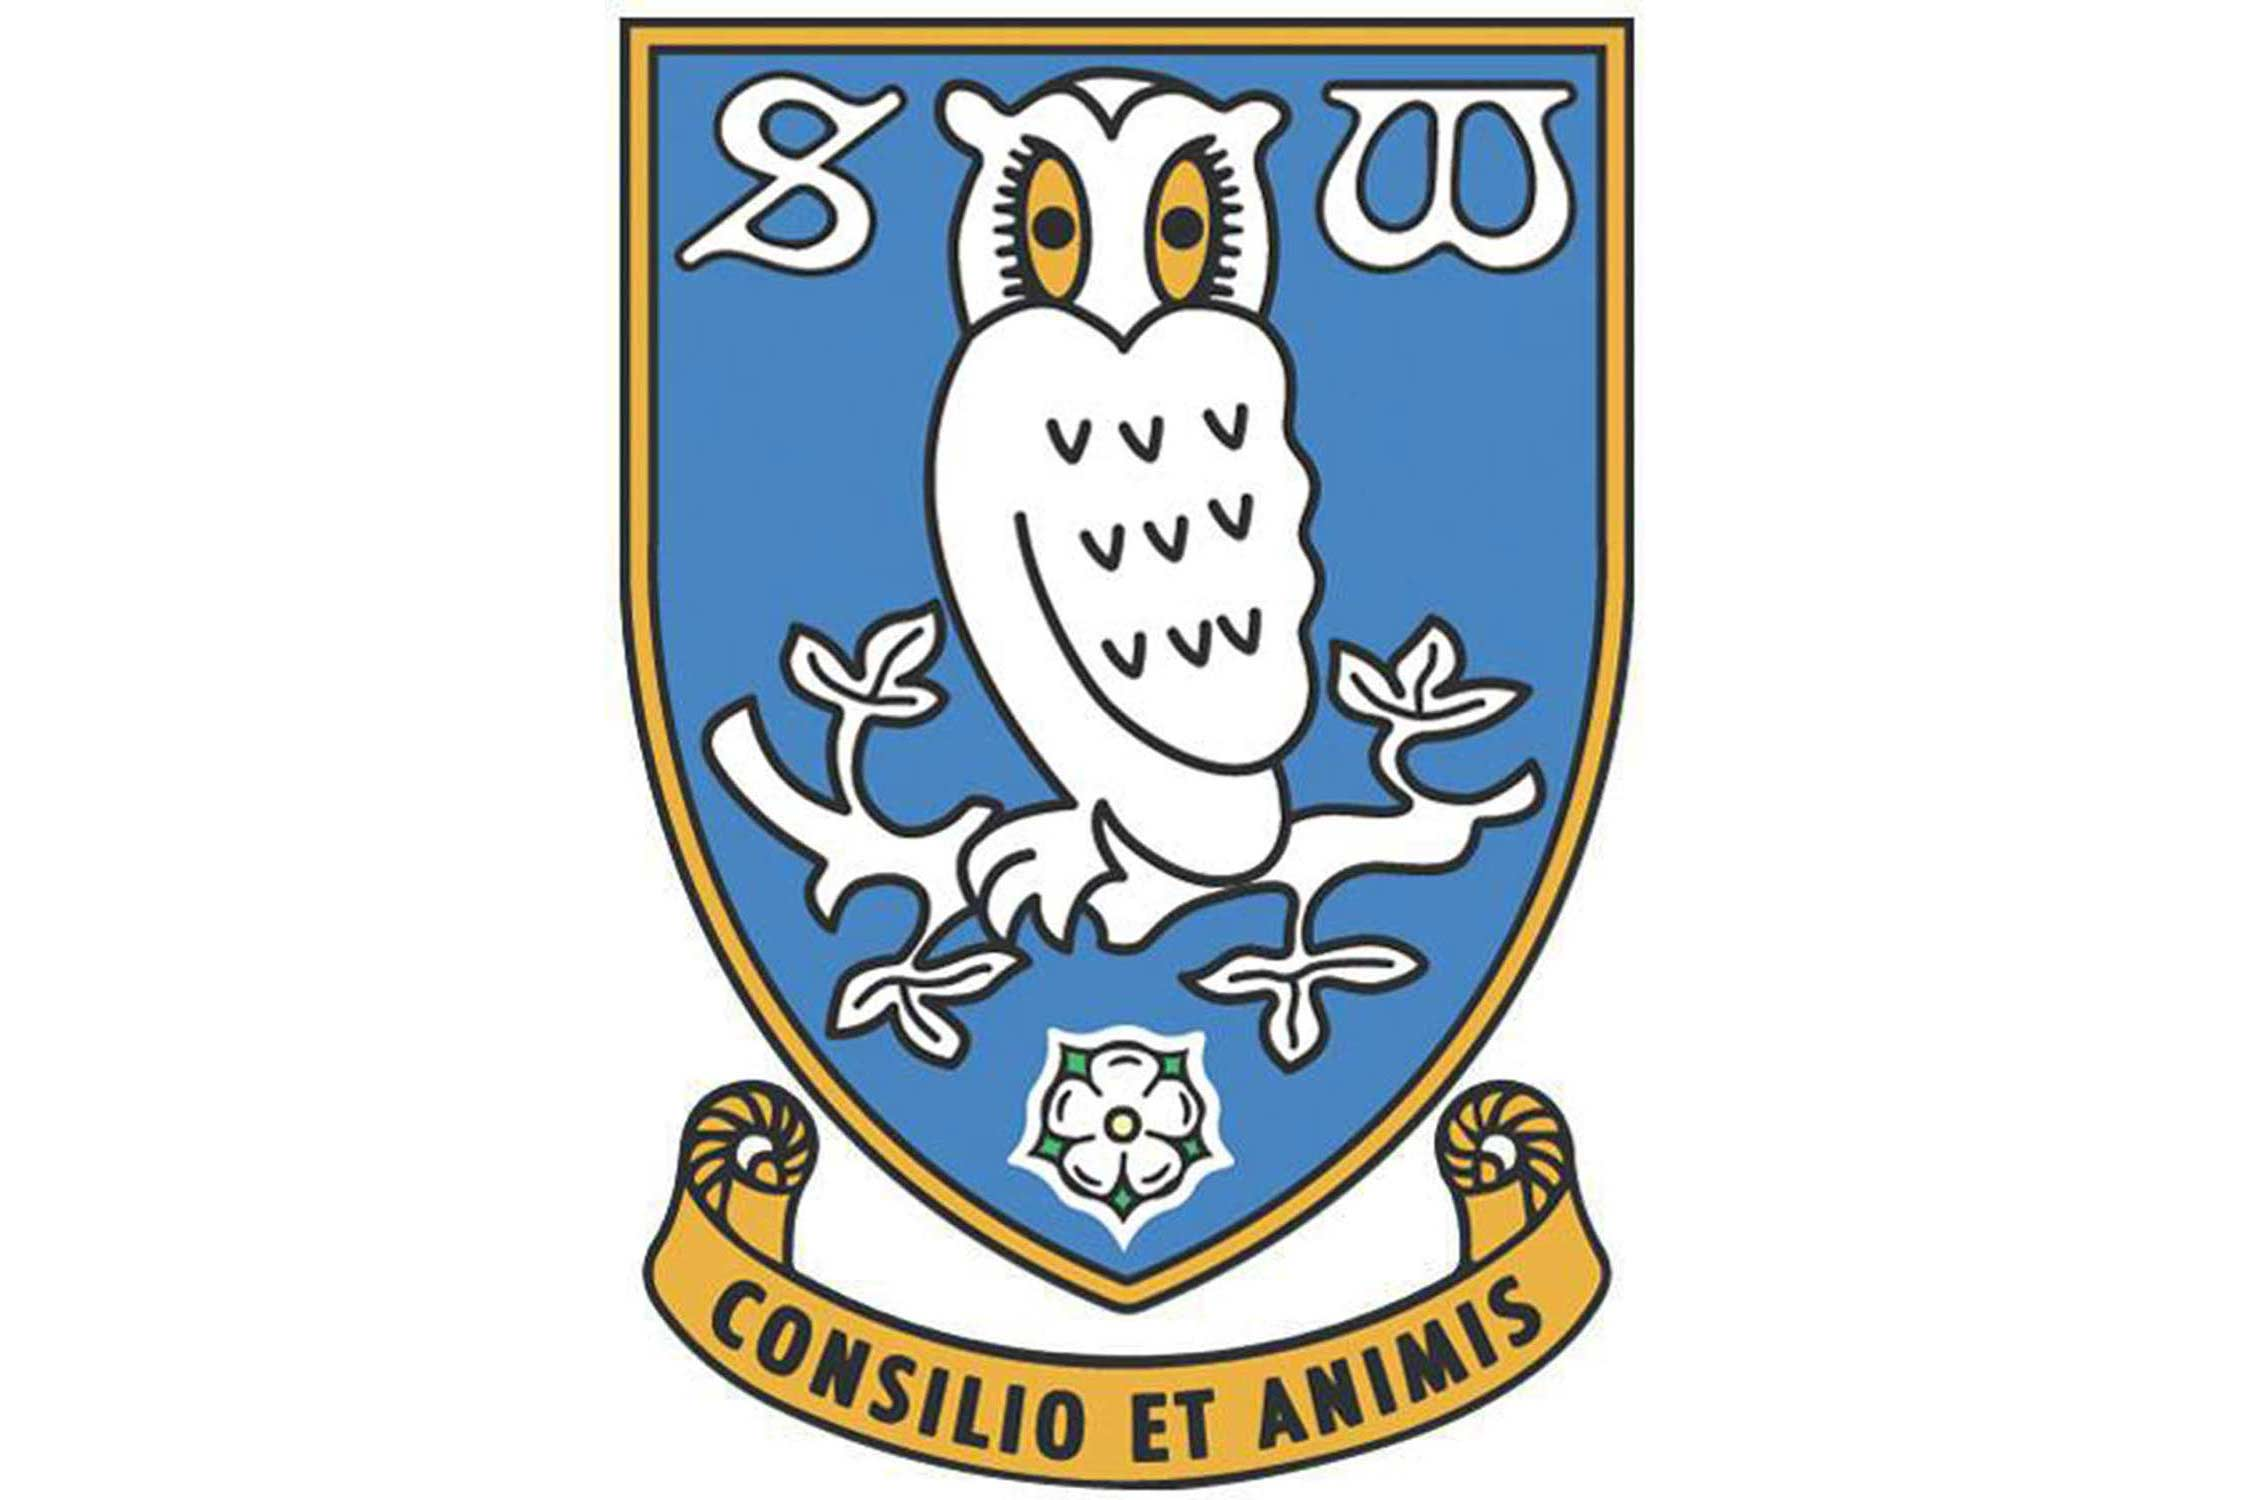 "The owl in the crest represents Owlerton, a suburban section of Sheffield where the club's home stadium is located. The club has also adopted the ""Owls"" as its nickname. The white rose is the white rose of Yorkshire, and can also be found in the logos of regional rivals Sheffield United and Leeds United."